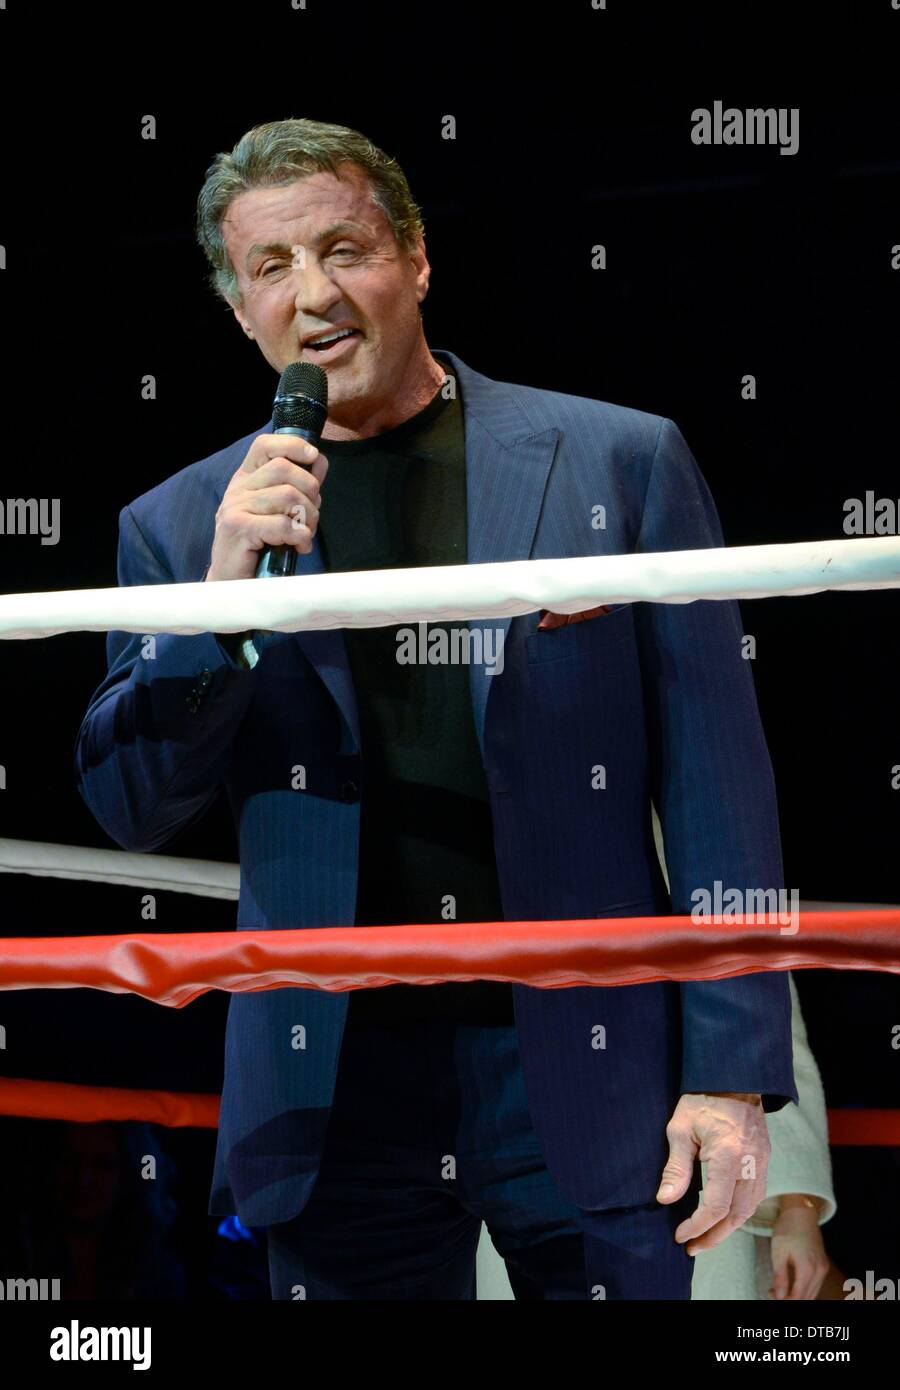 New York, NY, USA. 13th Feb, 2014. Sylvester Stallone in attendance for ROCKY First Performance of Previews on Broadway, Winter Garden Theatre, New York, NY February 13, 2014. Credit:  Derek Storm/Everett Collection/Alamy Live News - Stock Image